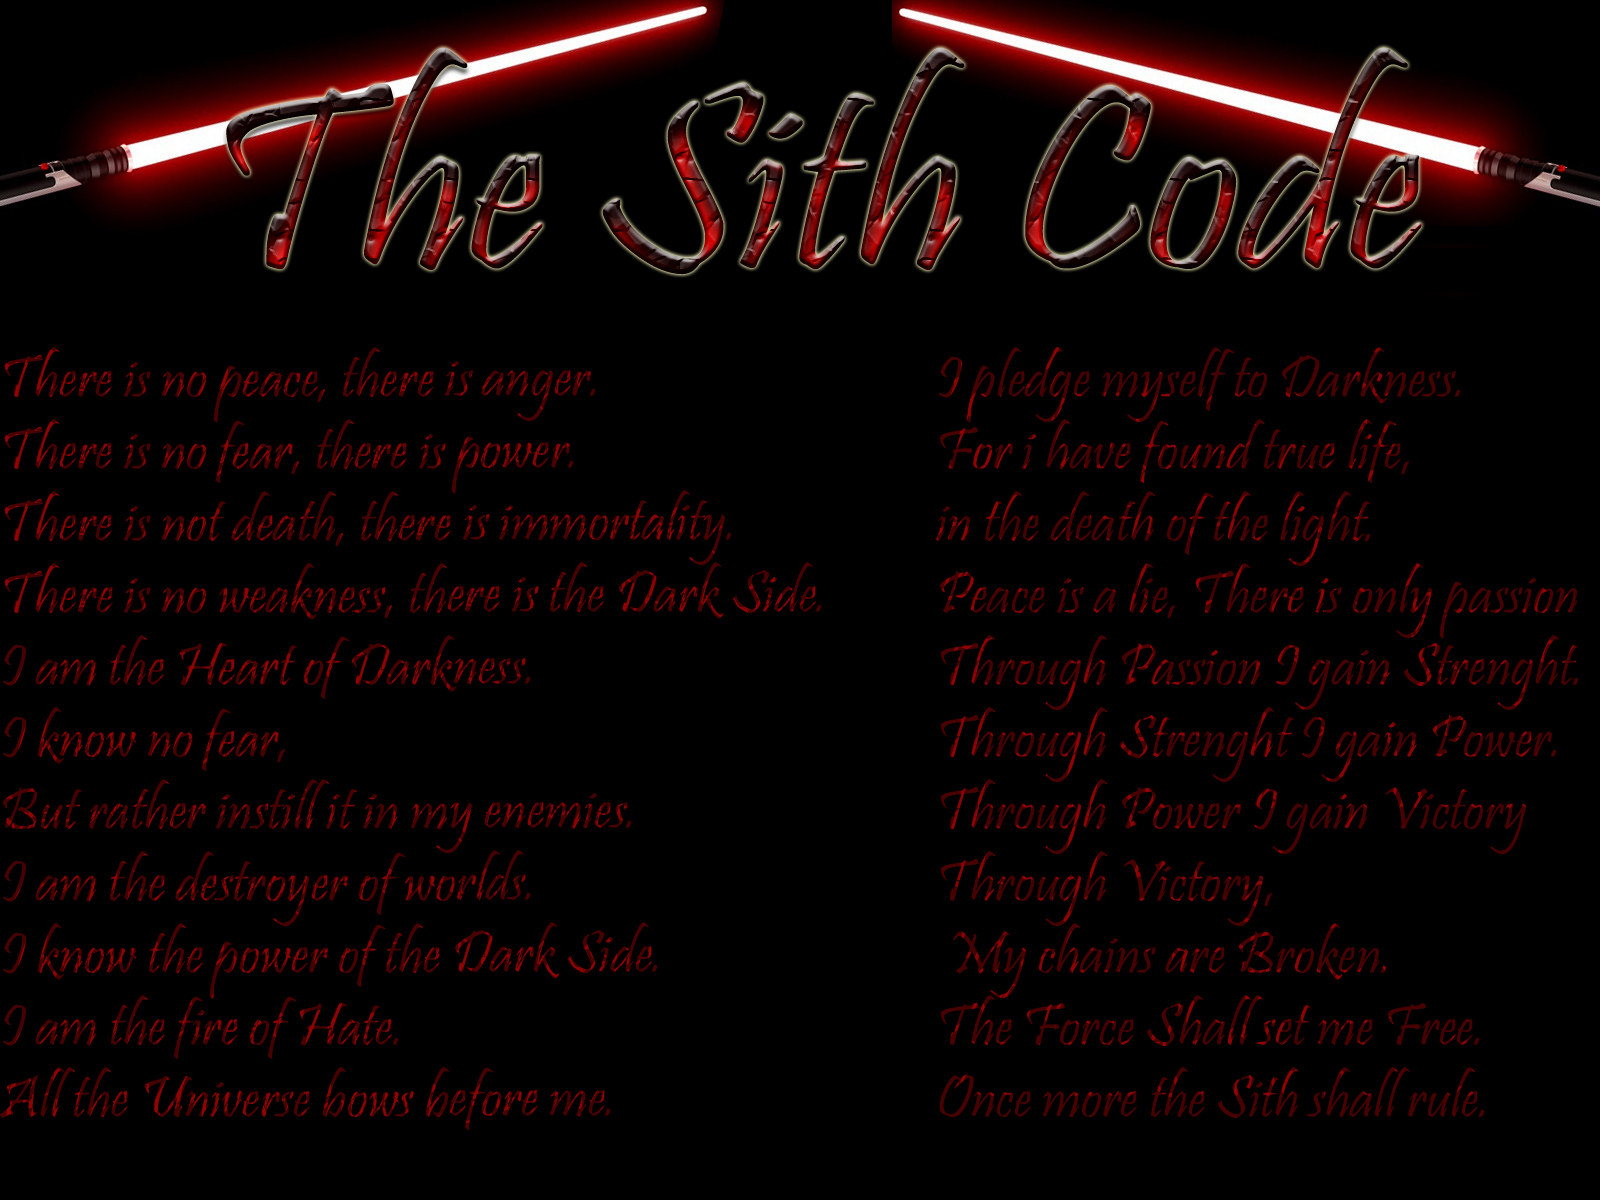 Image Gallery of Star Wars Sith Code Wallpaper